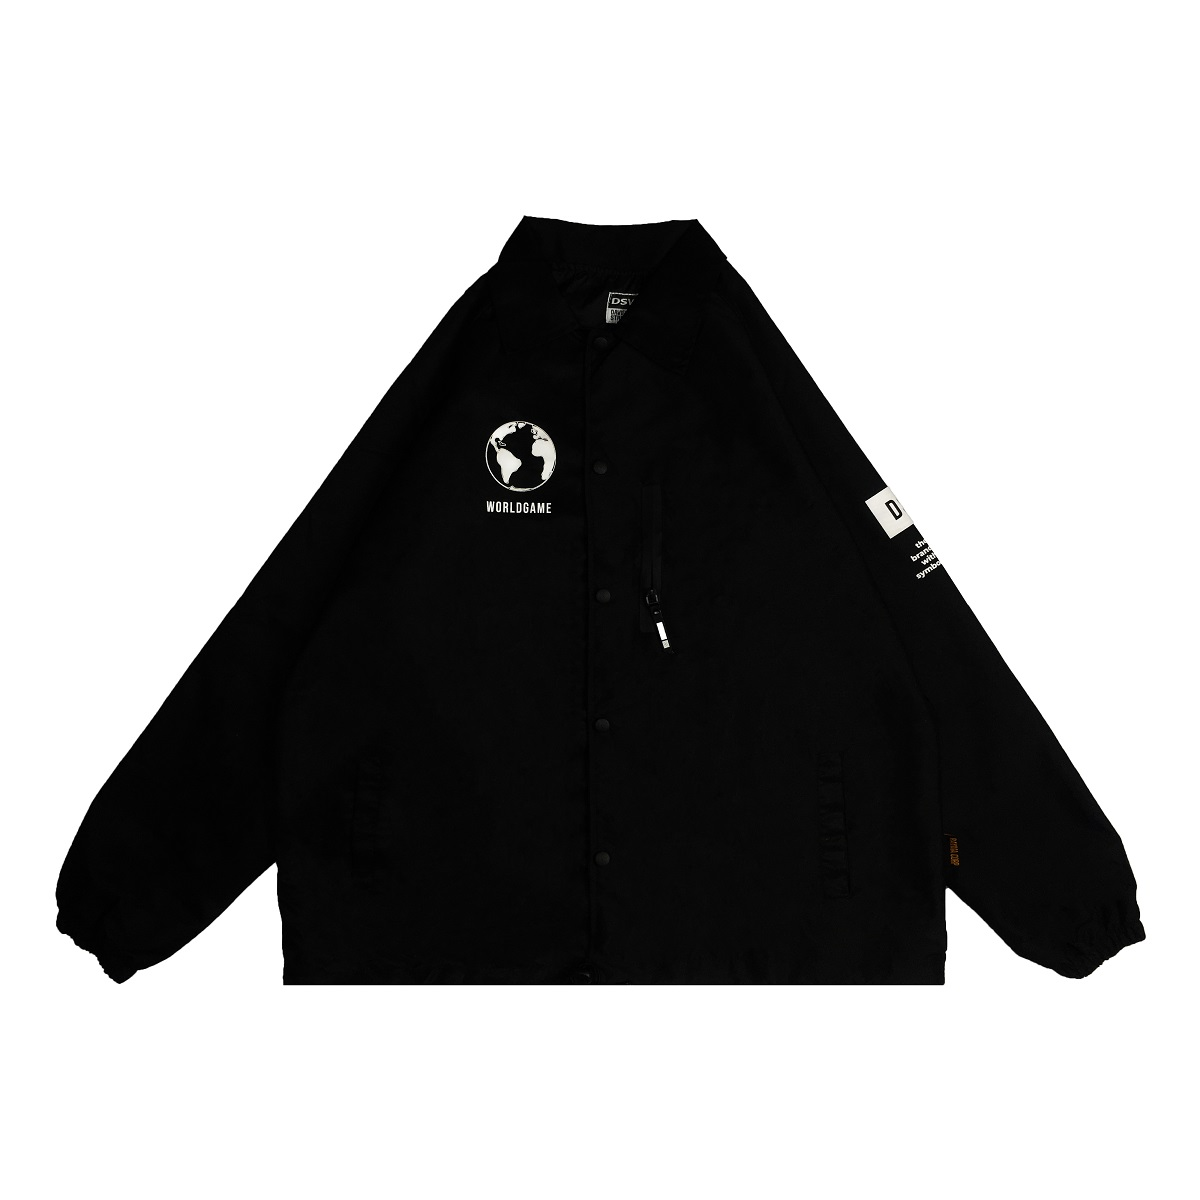 DSW JACKET WORLDGAME